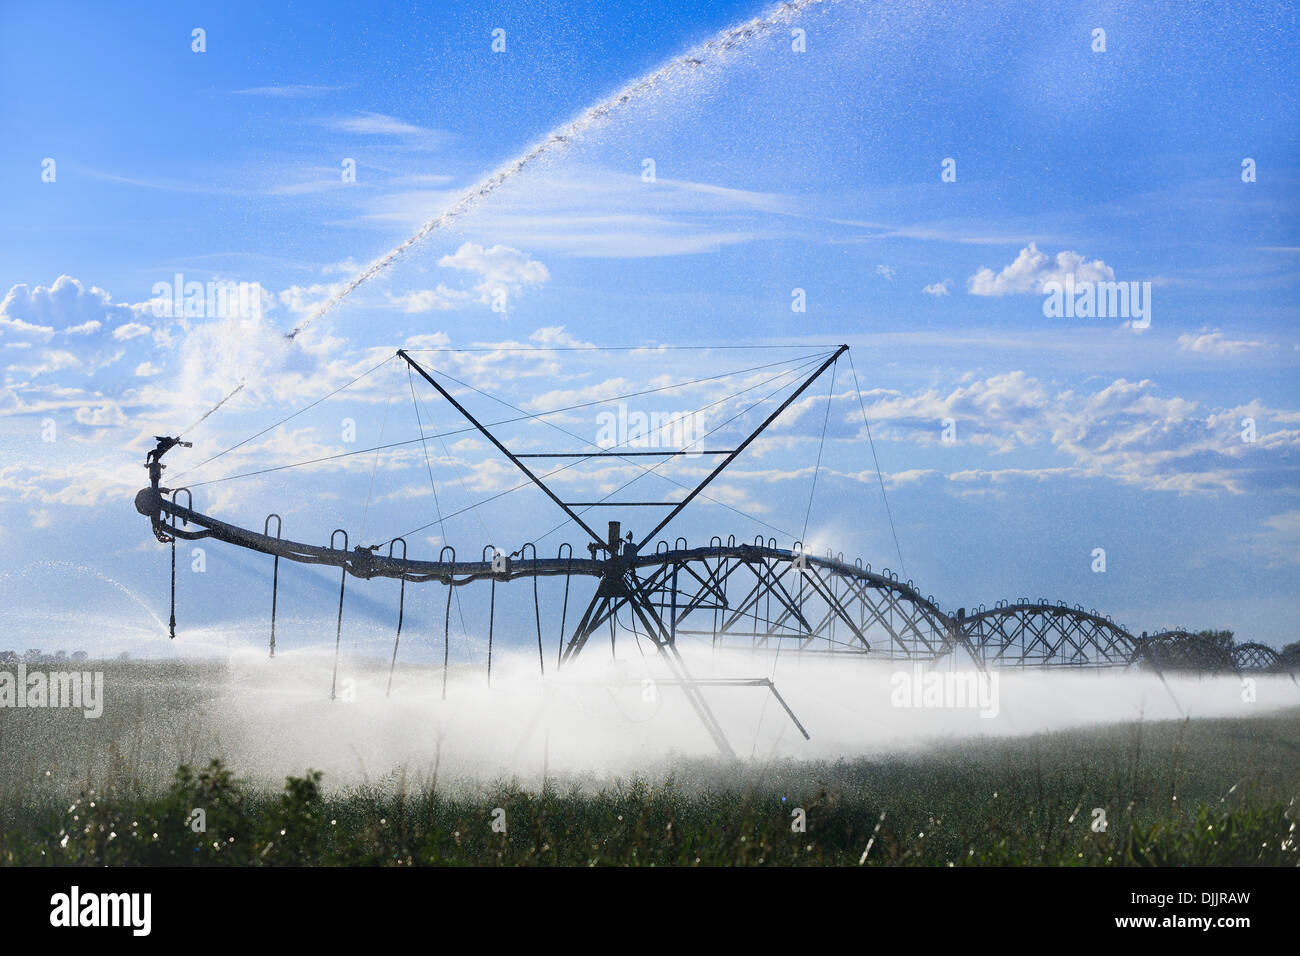 Center pivot water irrigation, watering farm fields, near Lethbridge, Alberta, Canada - Stock Image